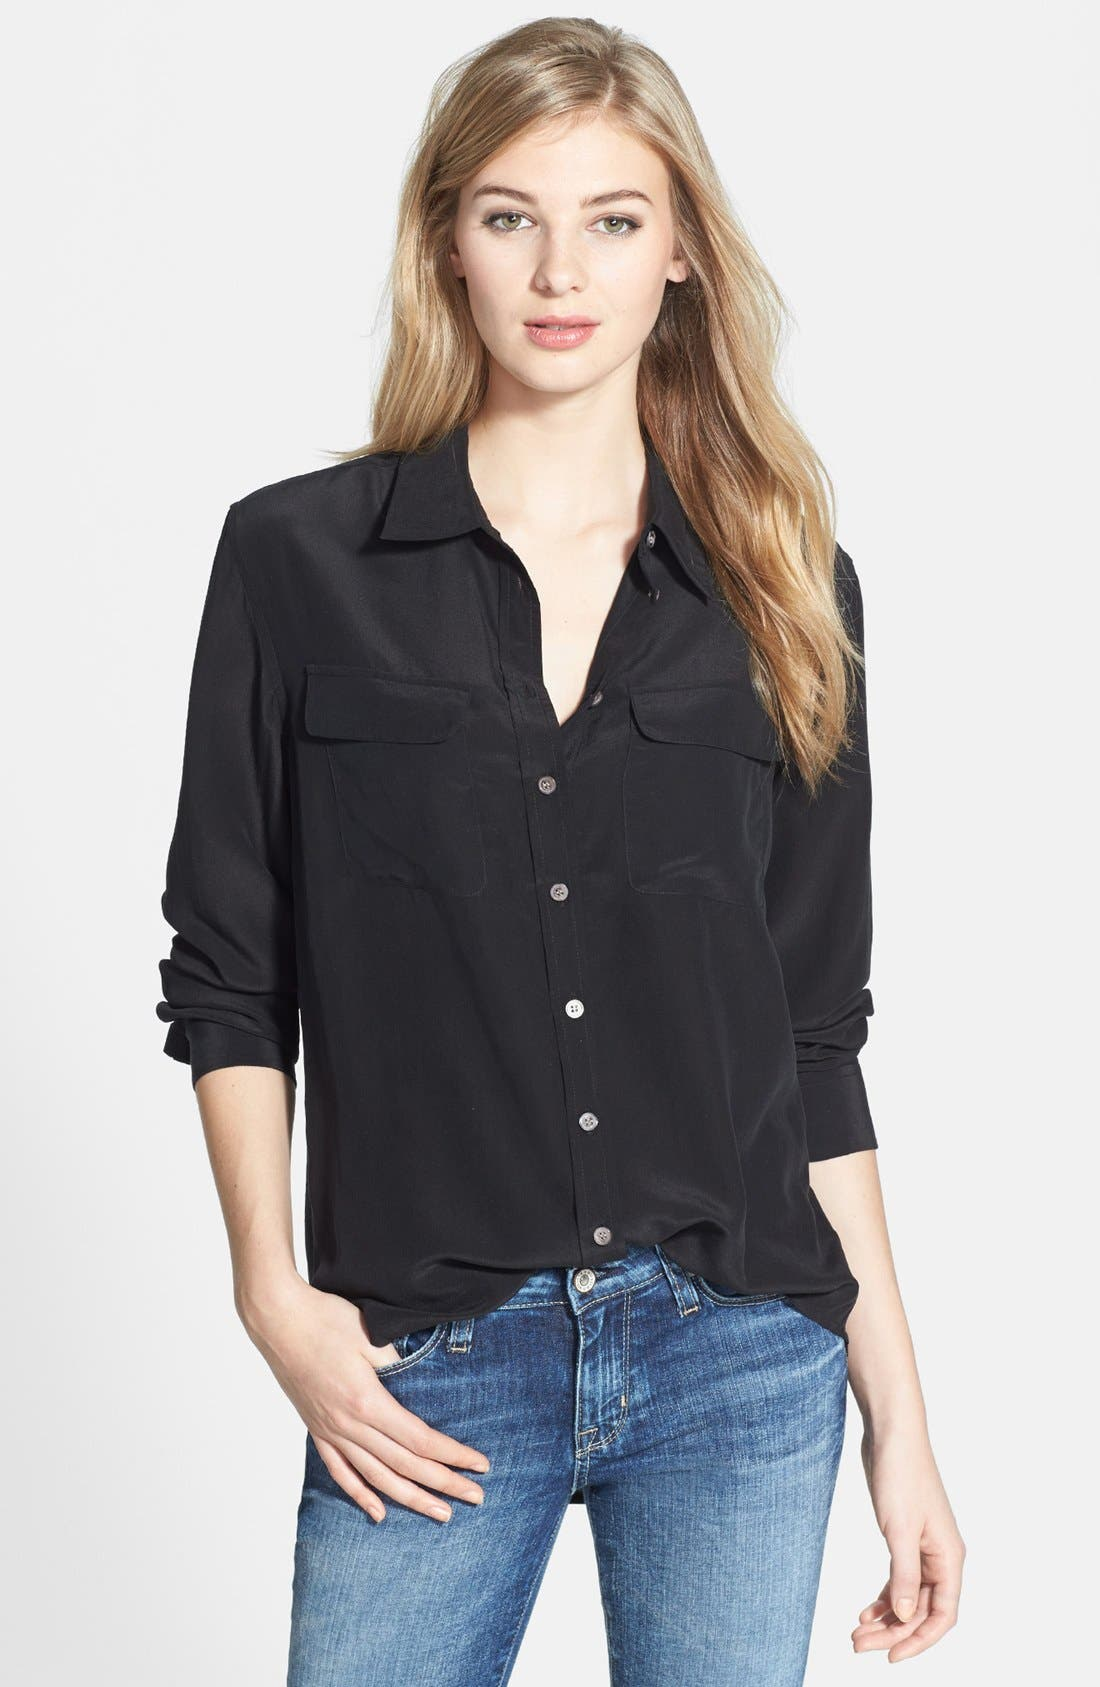 Alternate Image 1 Selected - Two by Vince Camuto Silk Utility Blouse (Regular & Petite)